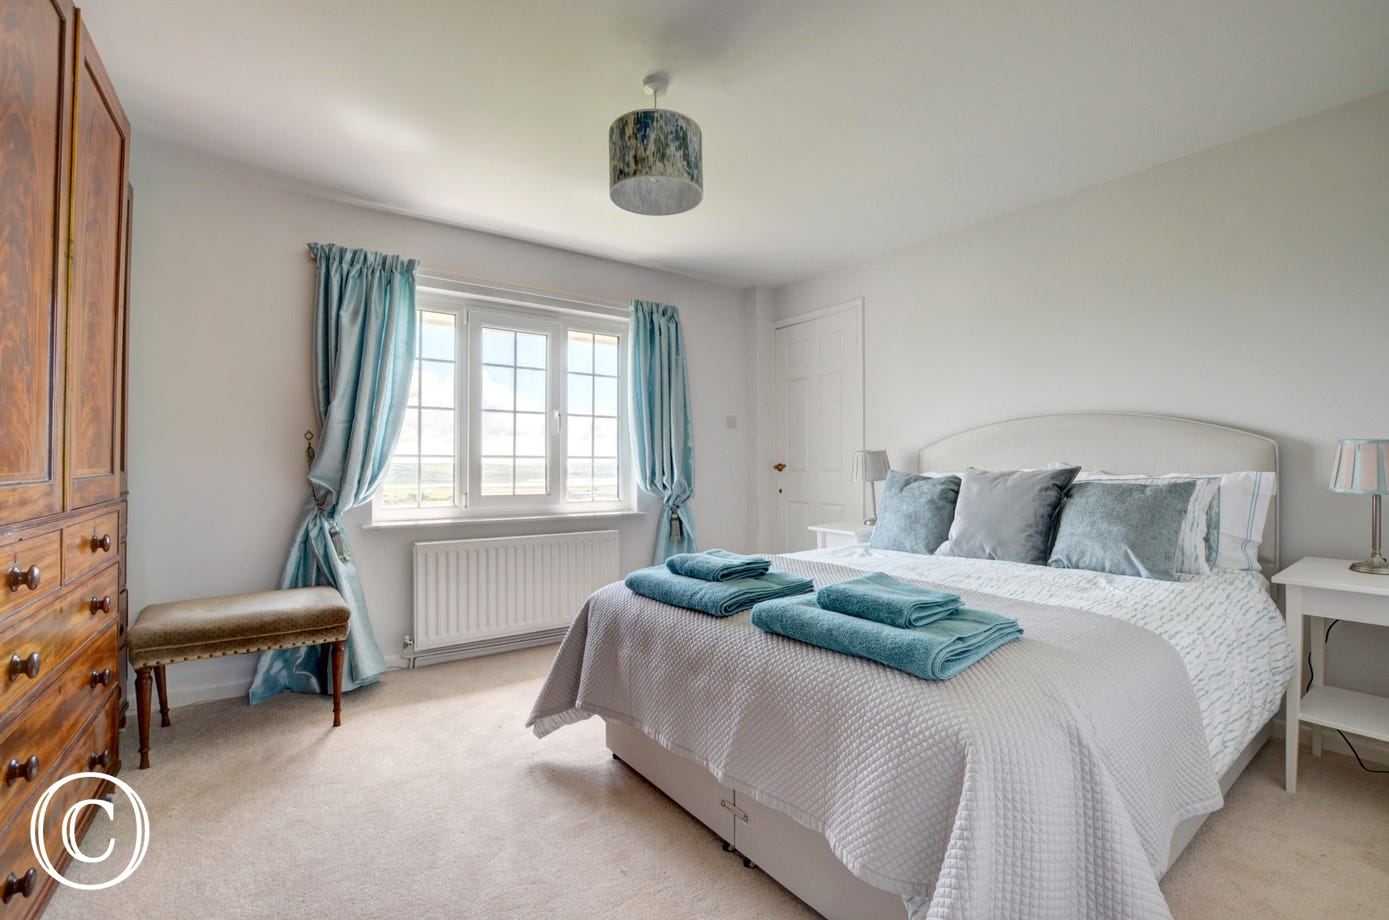 The master bedroom has a King and has plenty of storage space plus an ensuite bathroom